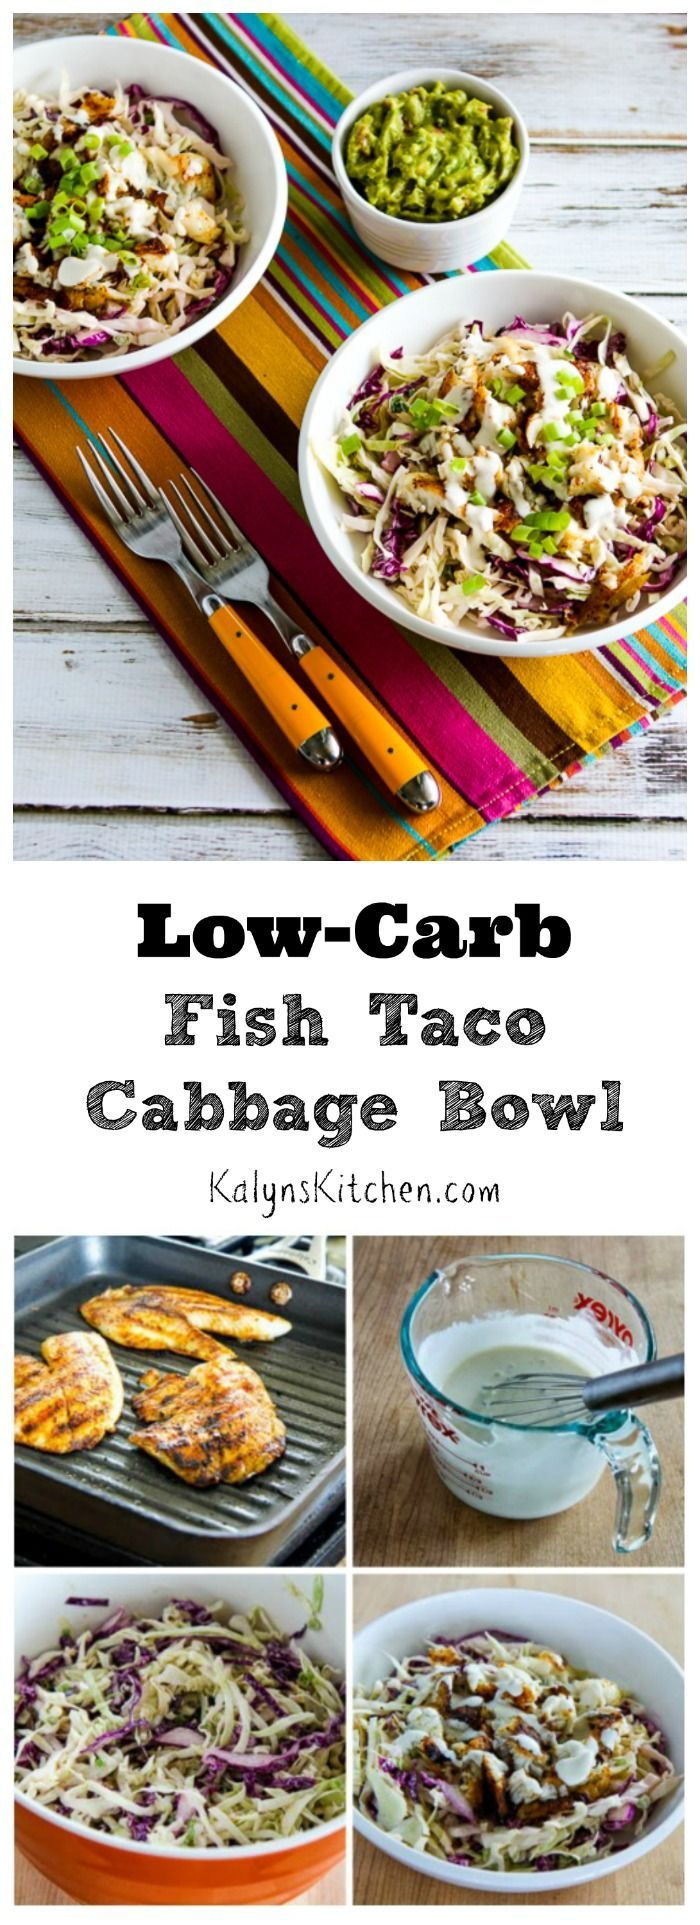 These Low-Carb Fish Taco Cabbage Bowls have all the amazing flavors of fish tacos without the carbs! You can cook the fish on an outdoor grill or on a grill pan on the stove, or even use leftover gril (Gluten Free Recipes Fish)